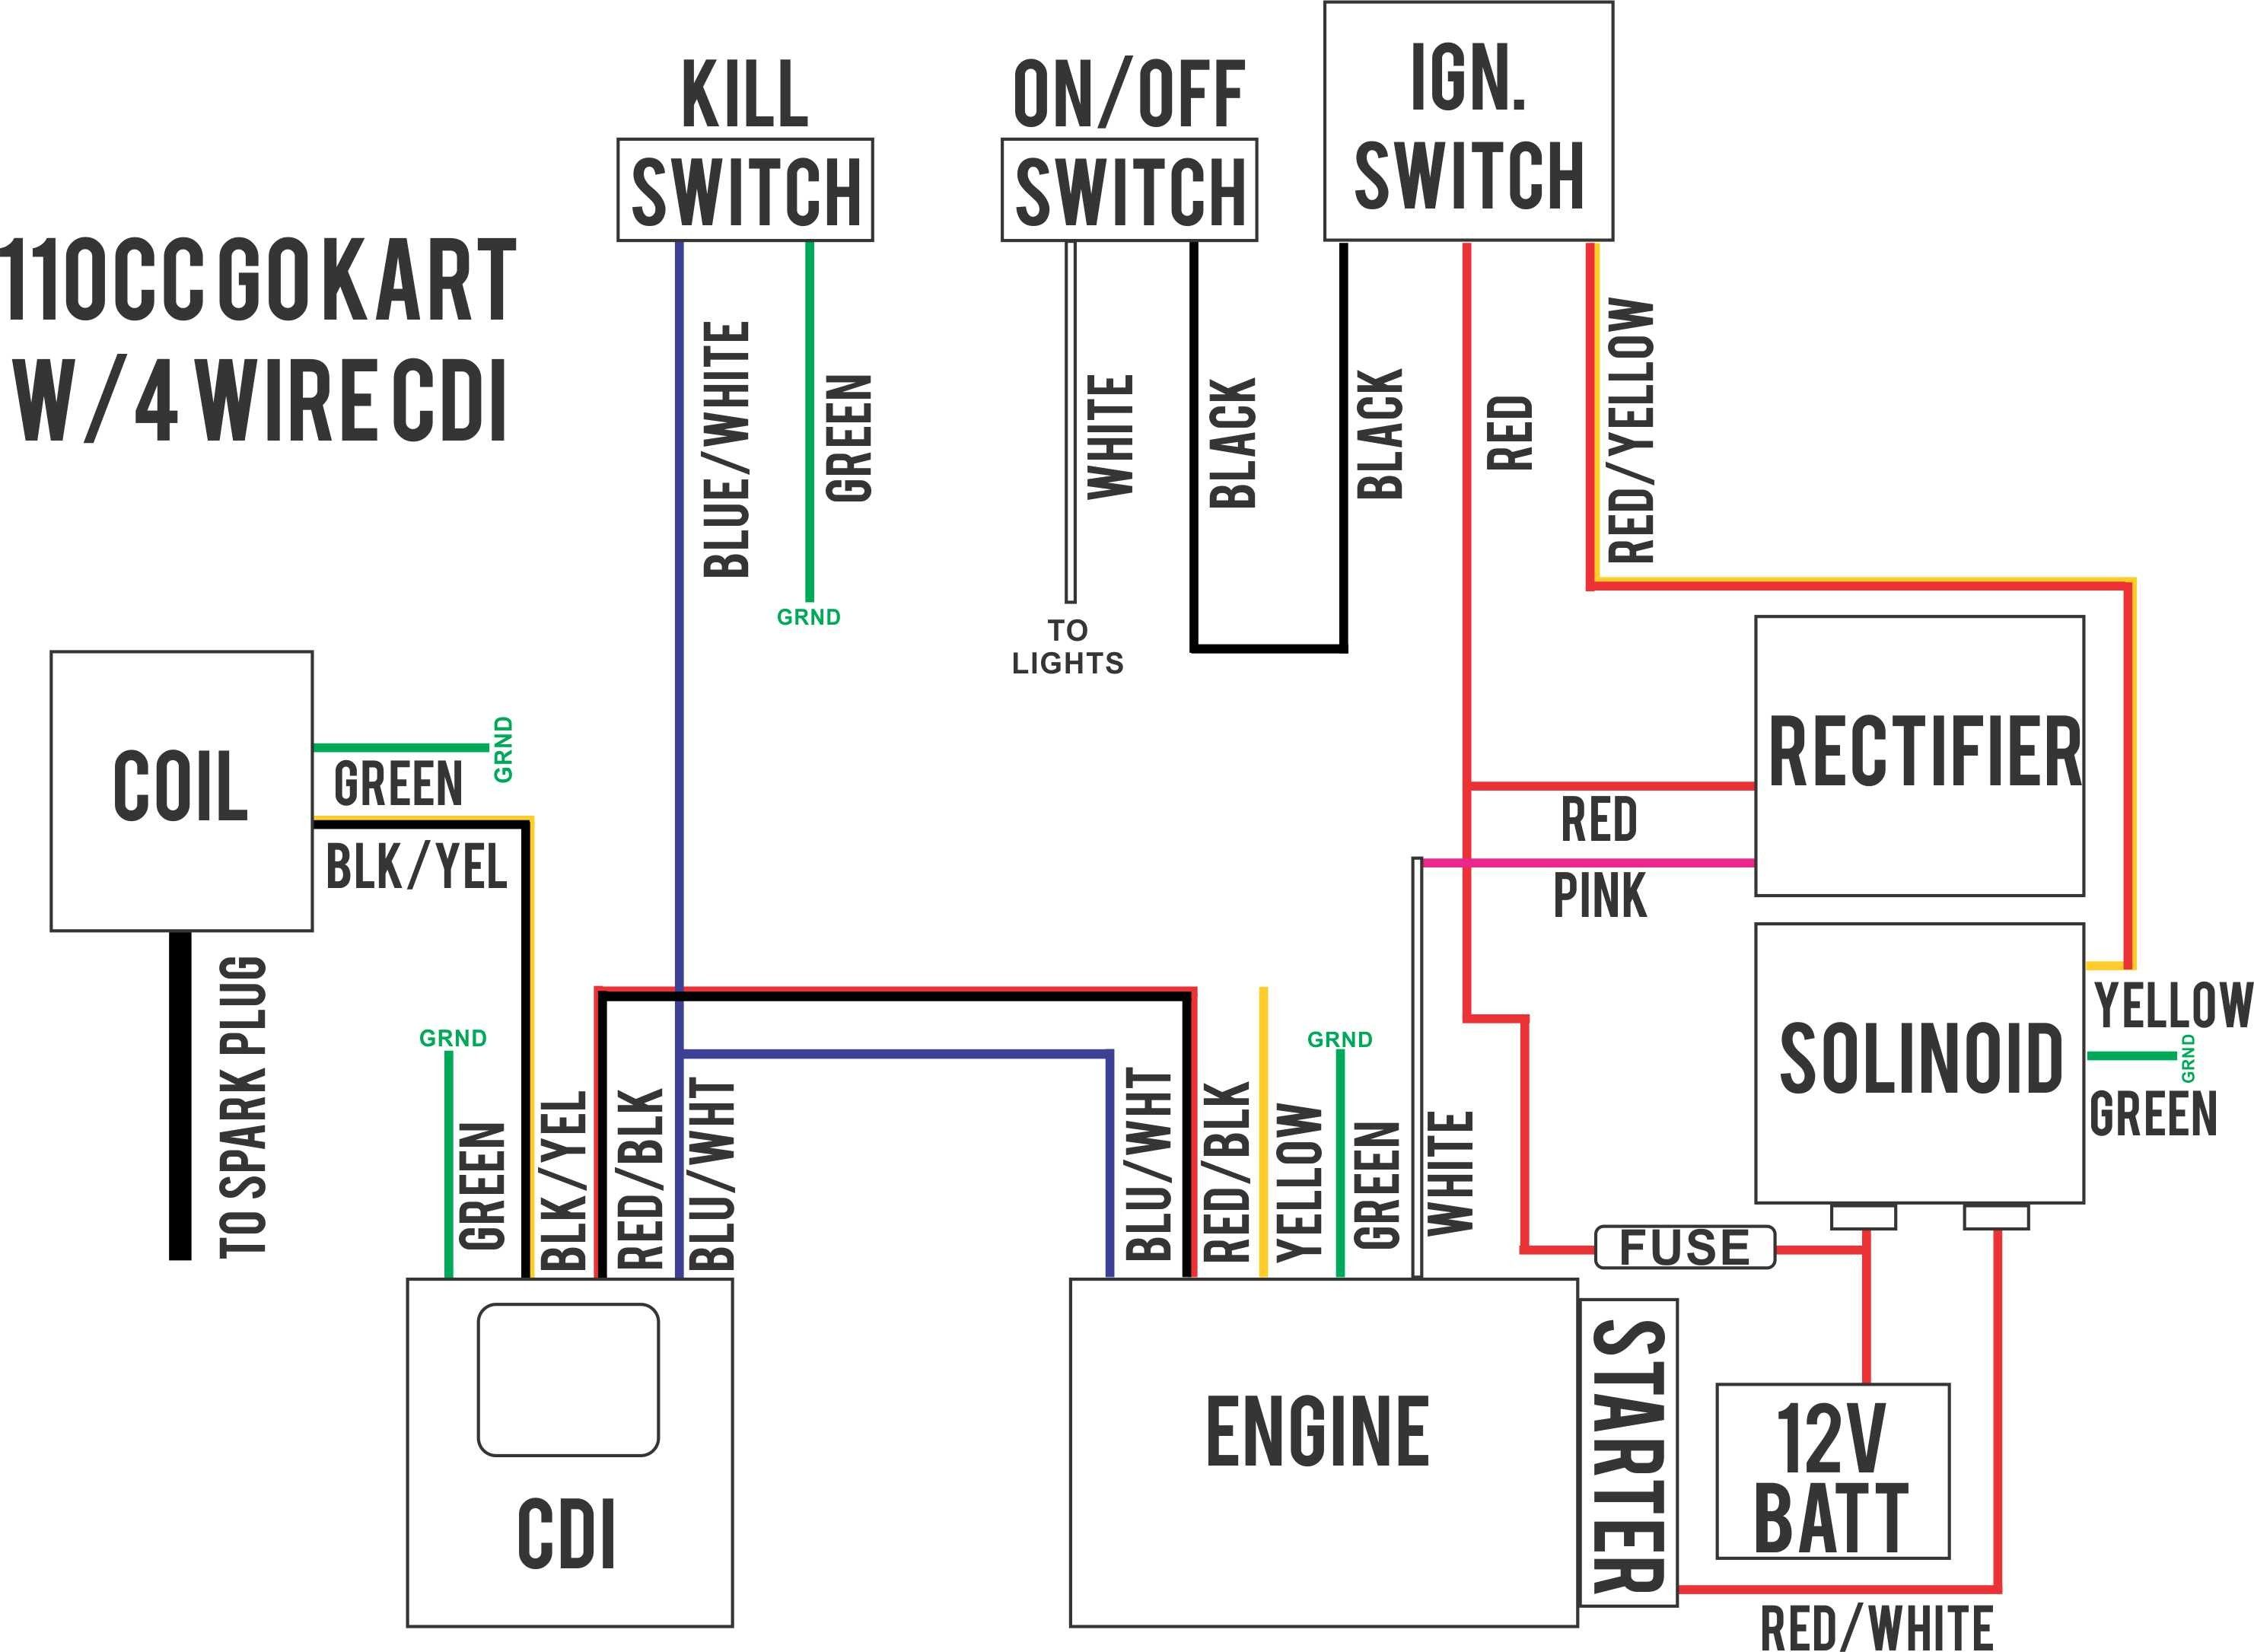 Wiring Diagram Of Motorcycle Honda Xrm 125 Electrical Wiring Diagram Electrical Wiring Motorcycle Wiring